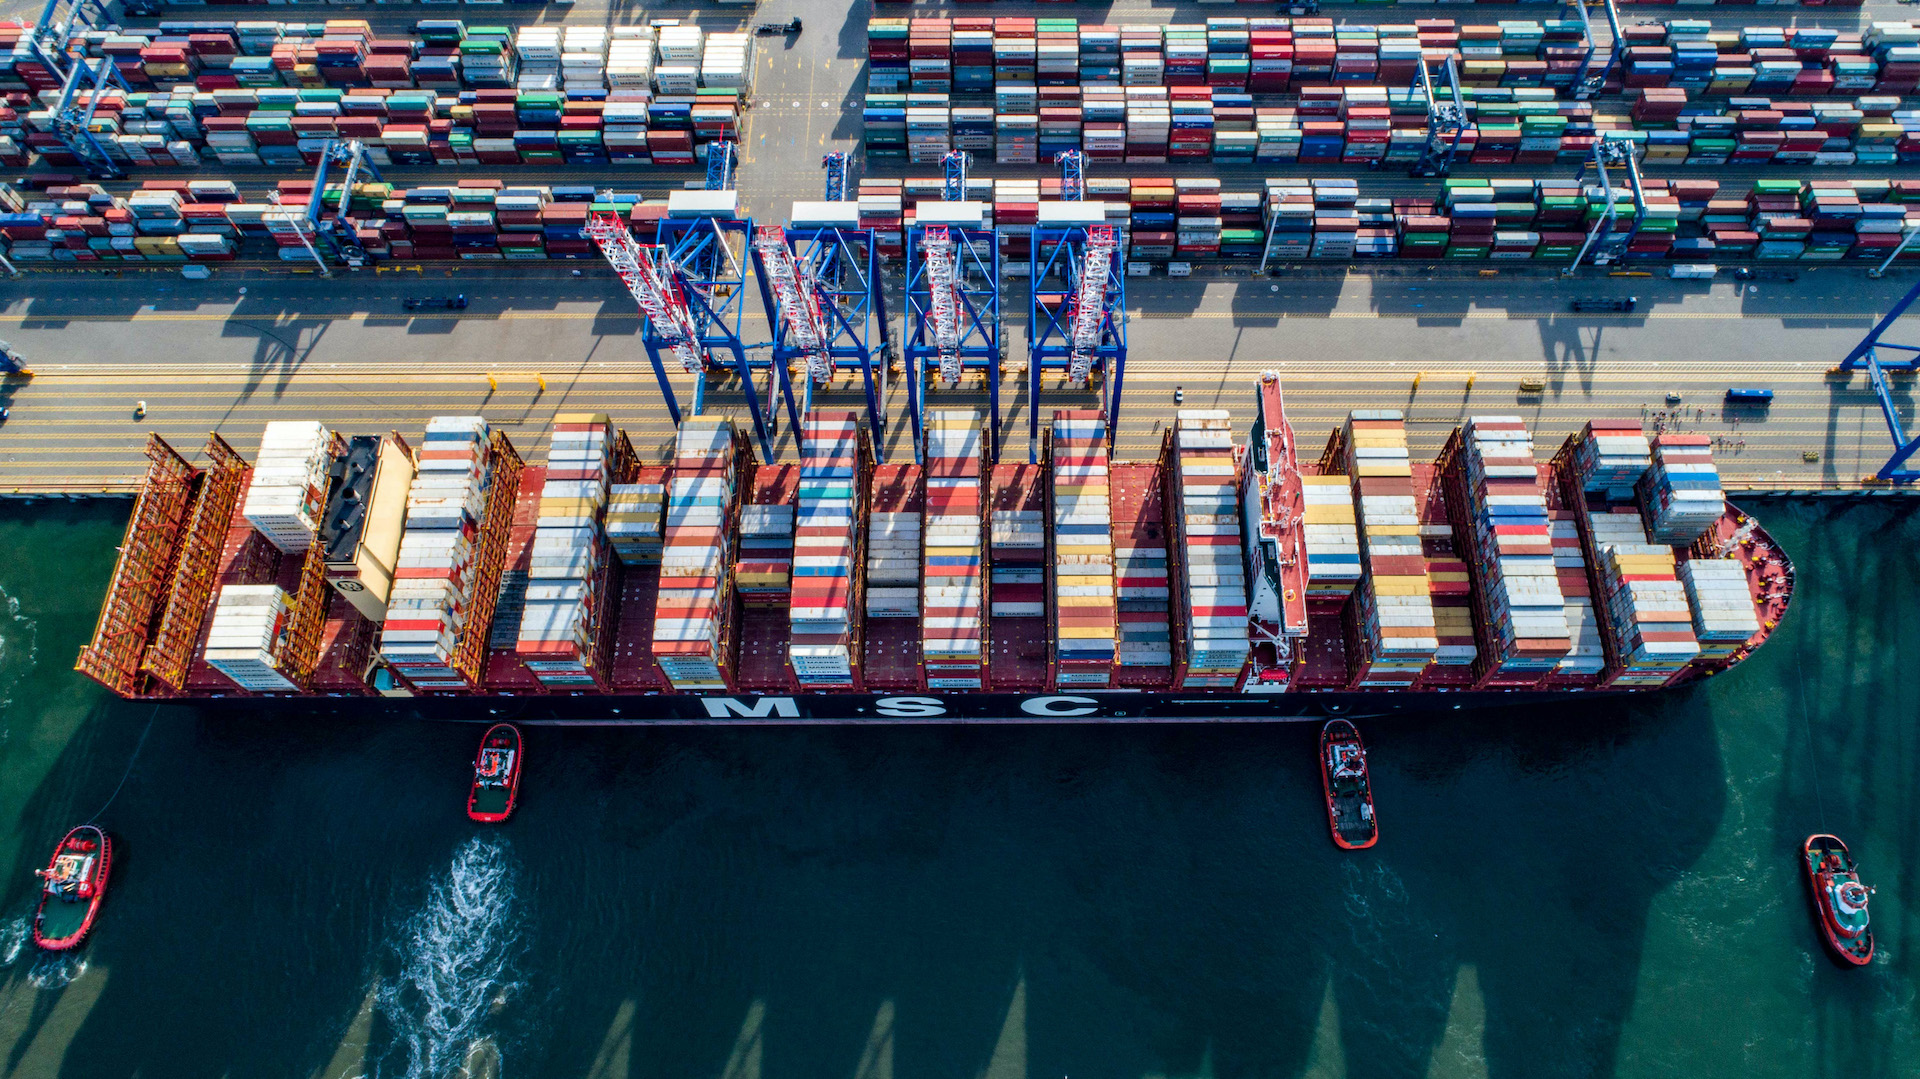 Global Container Shipping – Outlook and Future Prospects in the Coronavirus Outbreak